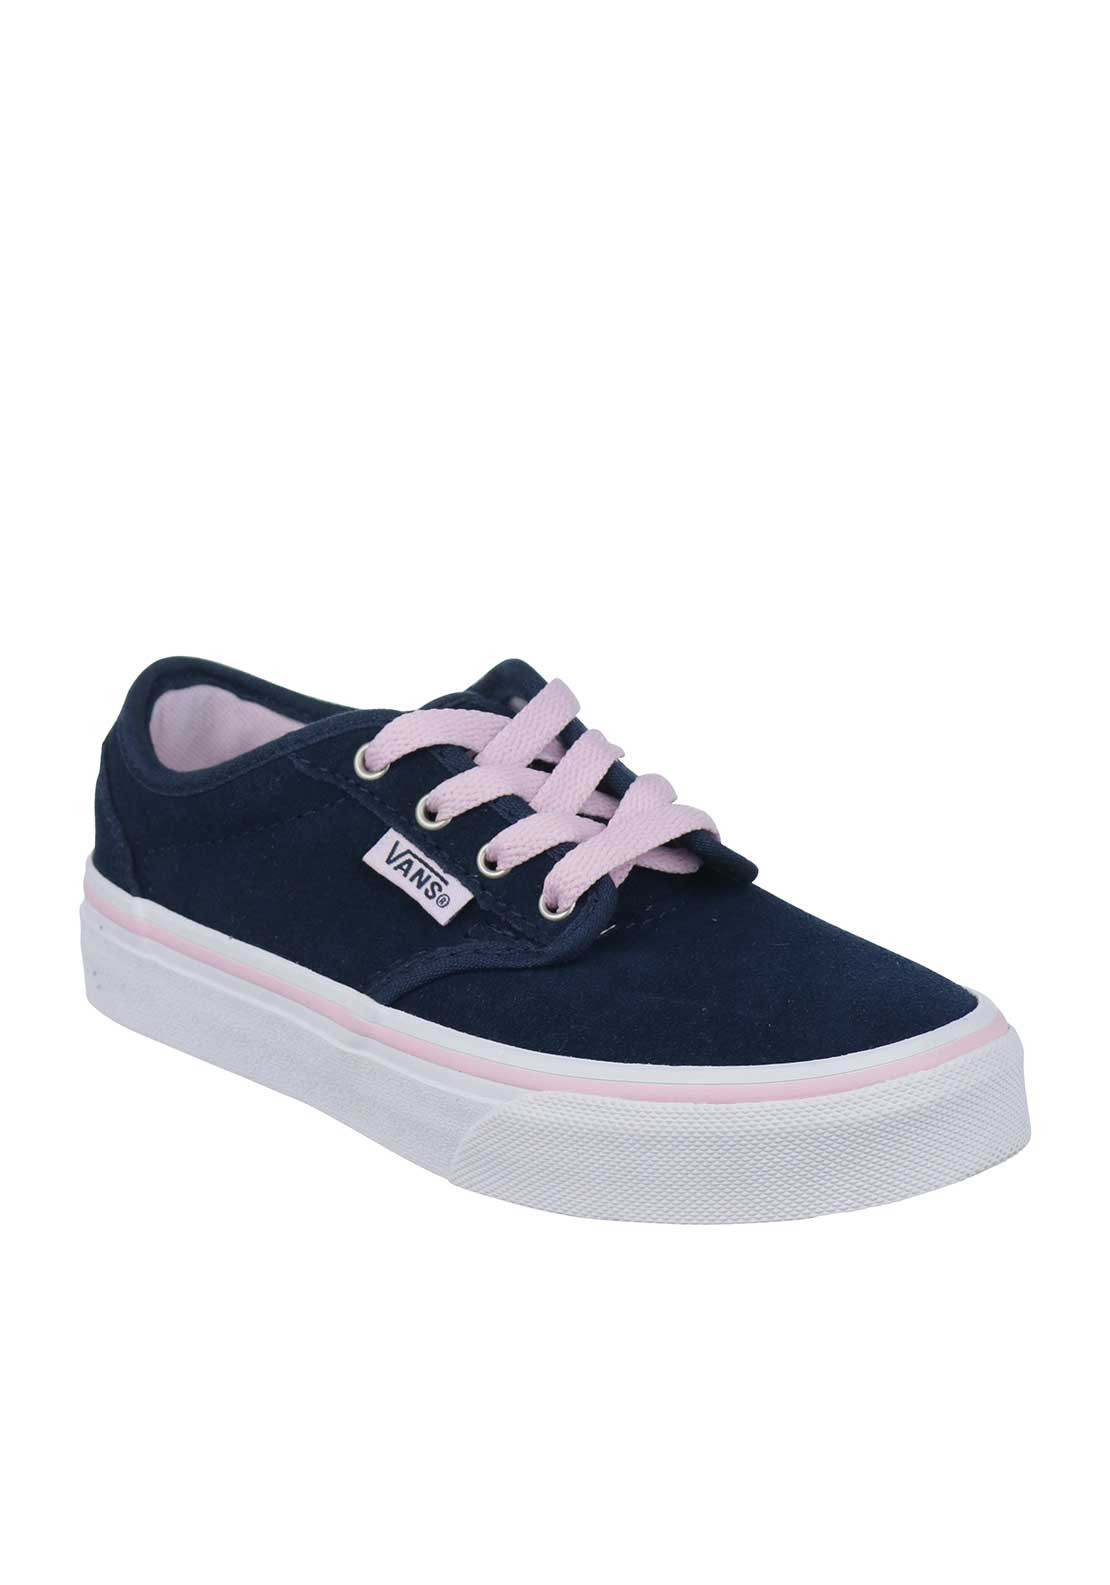 Vans Girls Suede Trainers, Navy